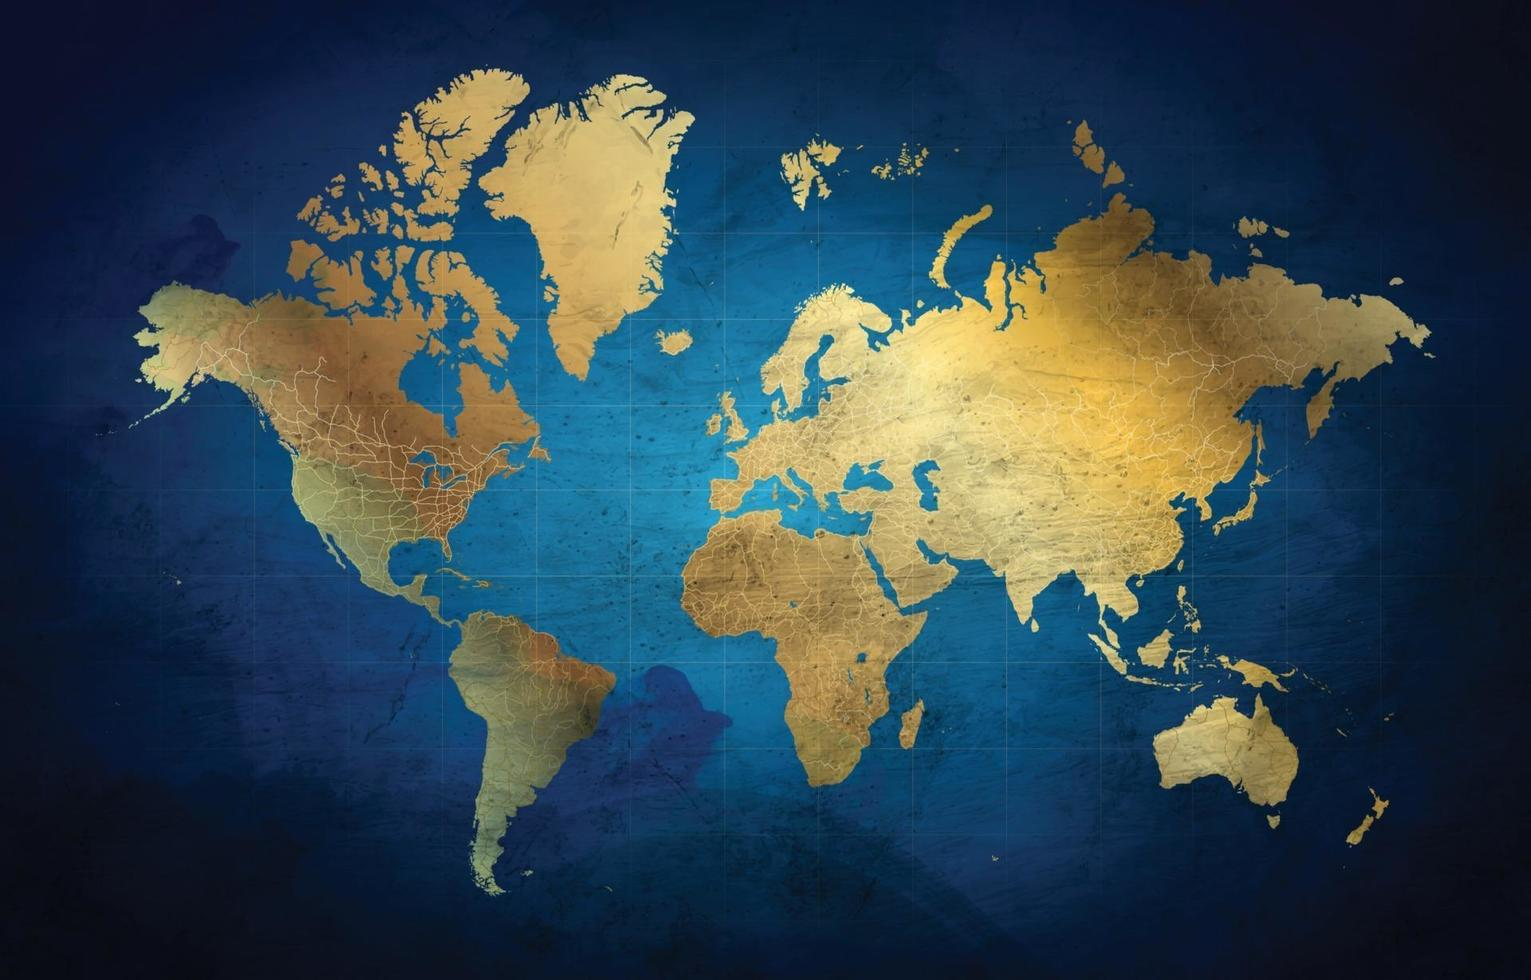 World Map Background in Navy Blue and Gold vector